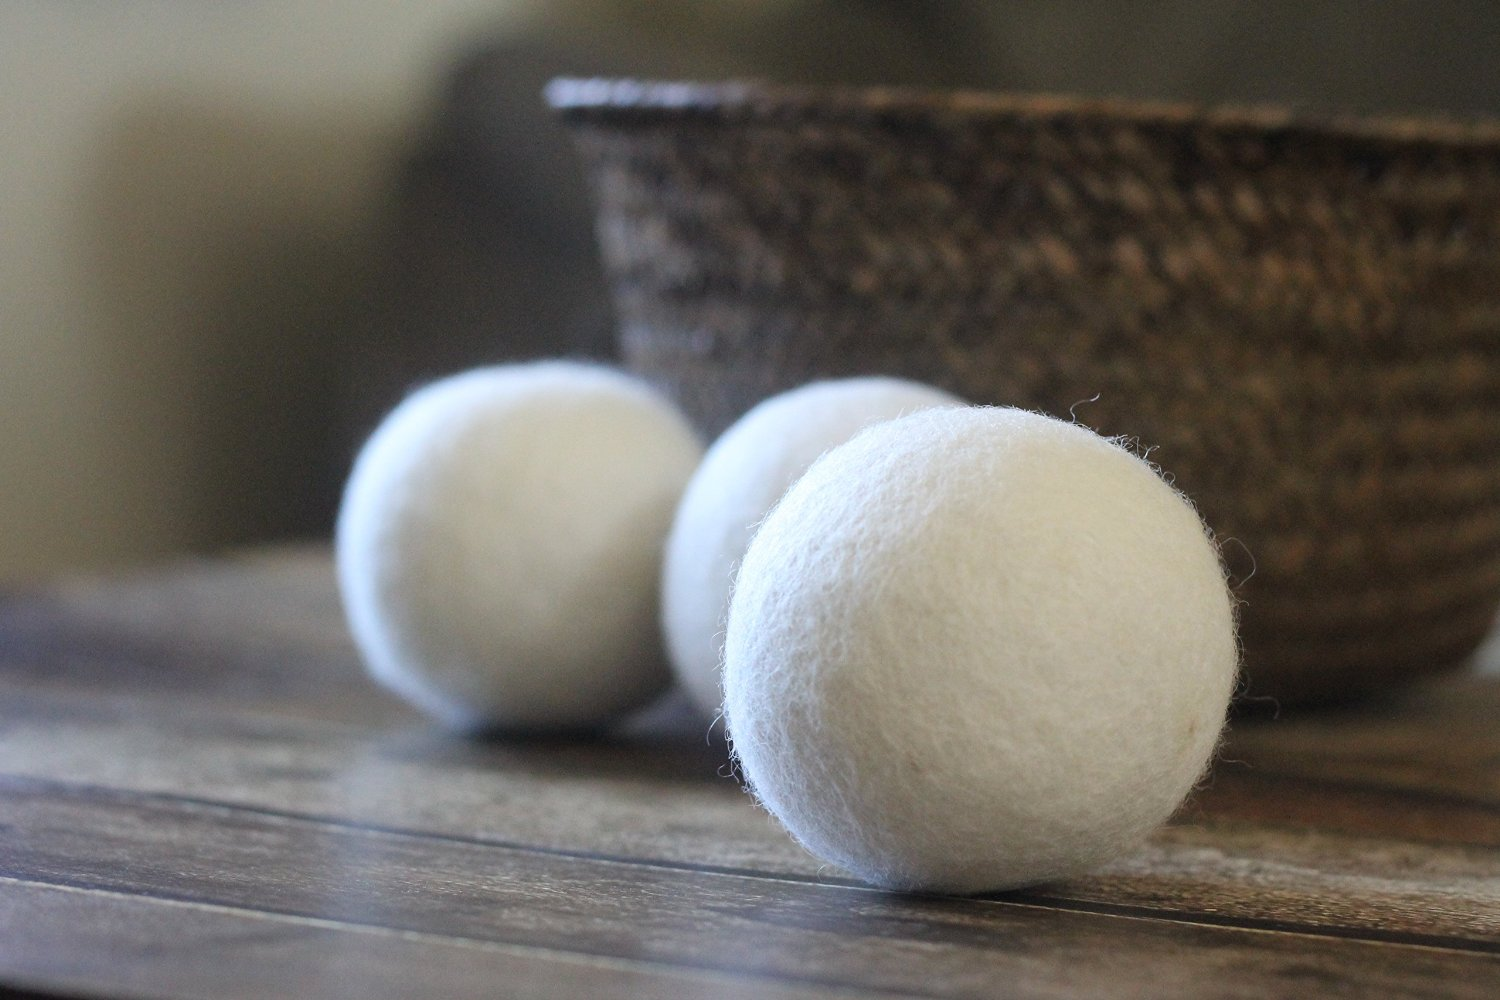 Smart Sheep's wool dryer balls. ($18)